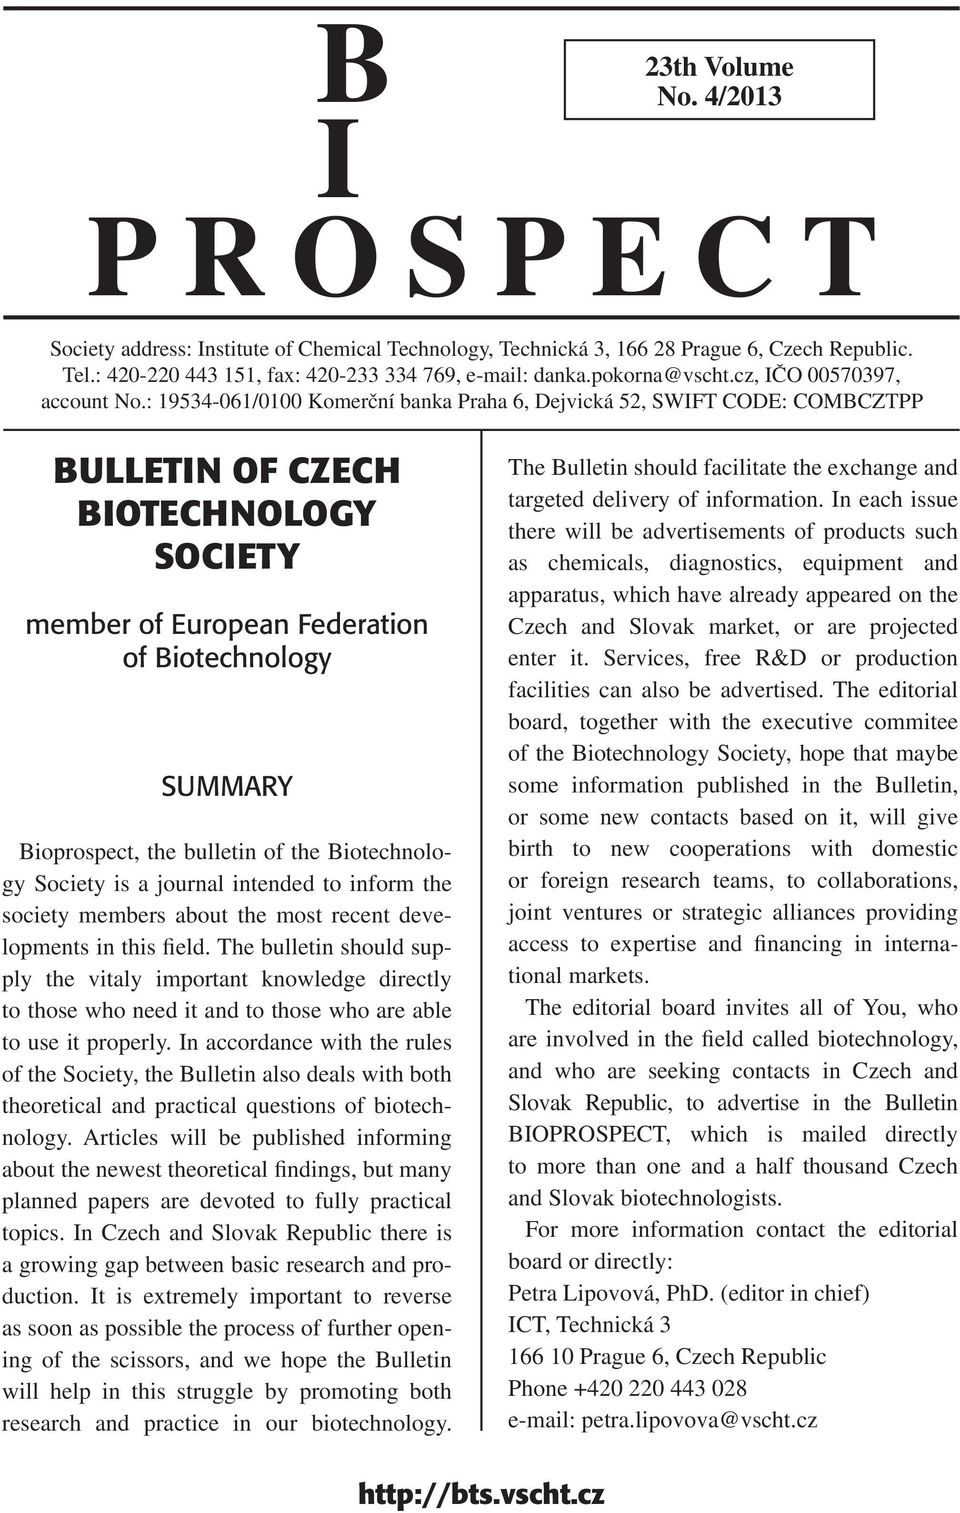 : 19534-061/0100 Komerční banka Praha 6, Dejvická 52, SWIFT CODE: COMBCZTPP BULLETIN OF CZECH BIOTECHNOLOGY SOCIETY member of European Federation of Biotechnology SUMMARY Bioprospect, the bulletin of